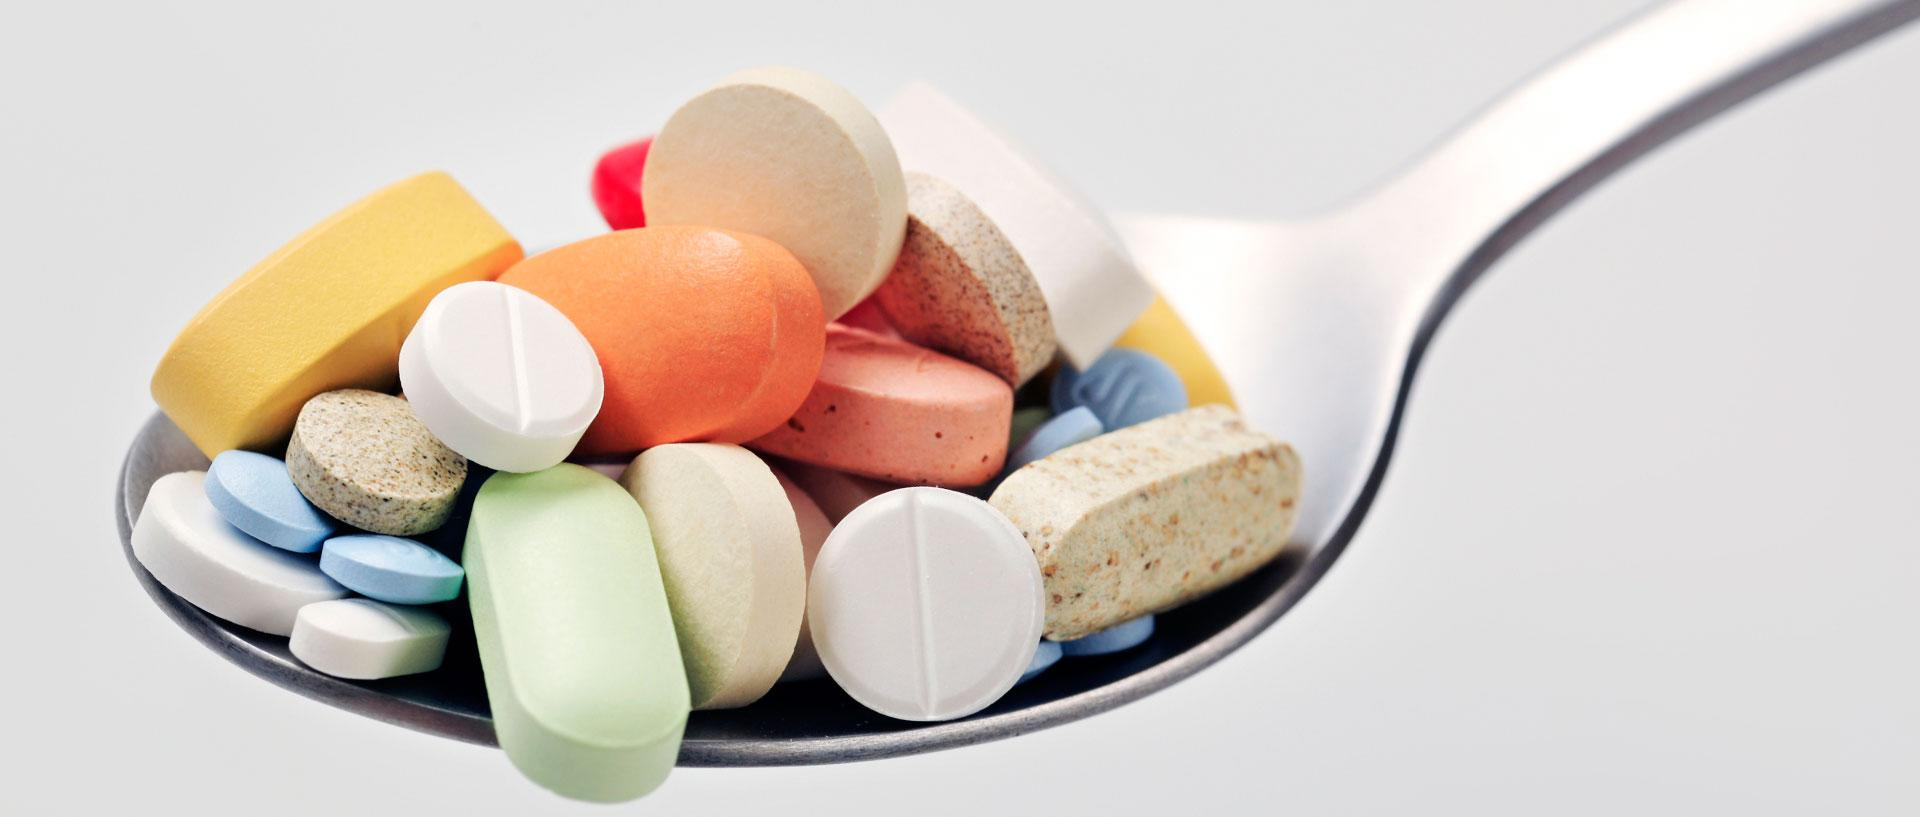 What You Need to Know About Supplements and Drug Interactions